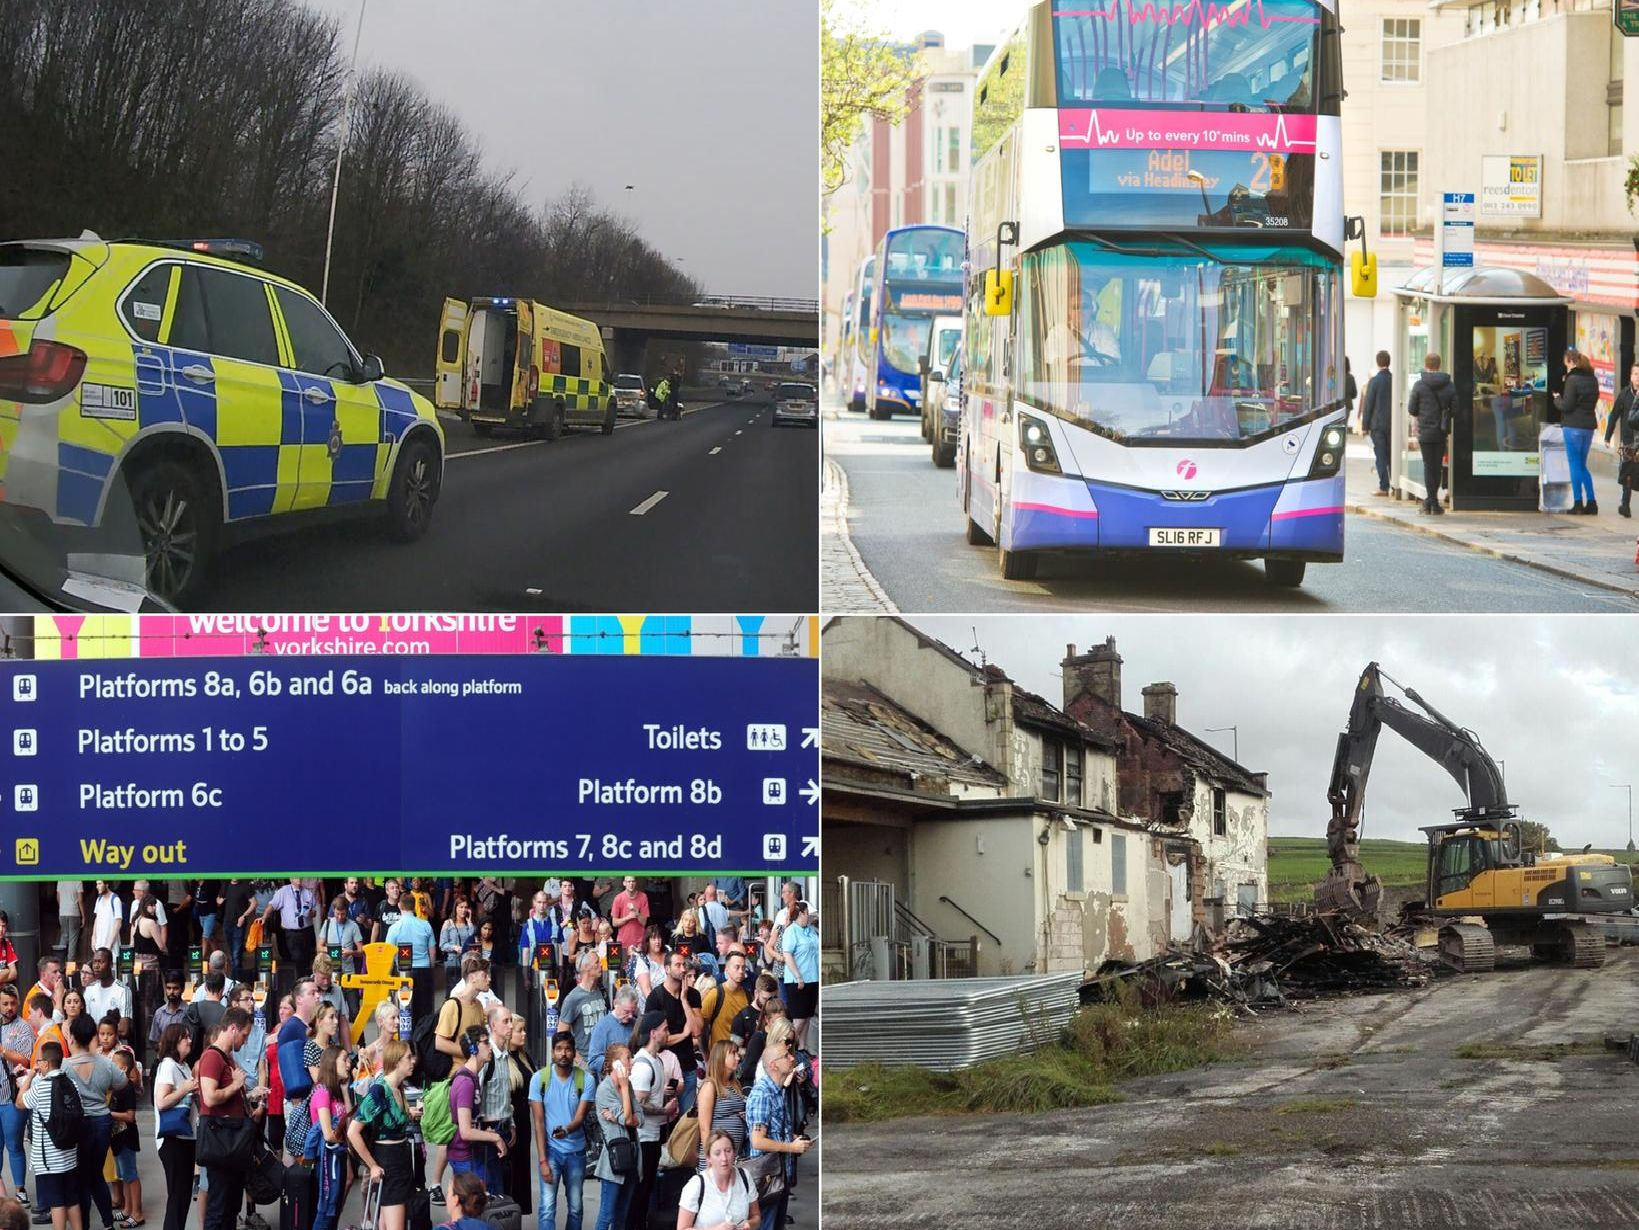 11 ways HS2 construction will impact Leeds including demolitions, road and bus diversions in full